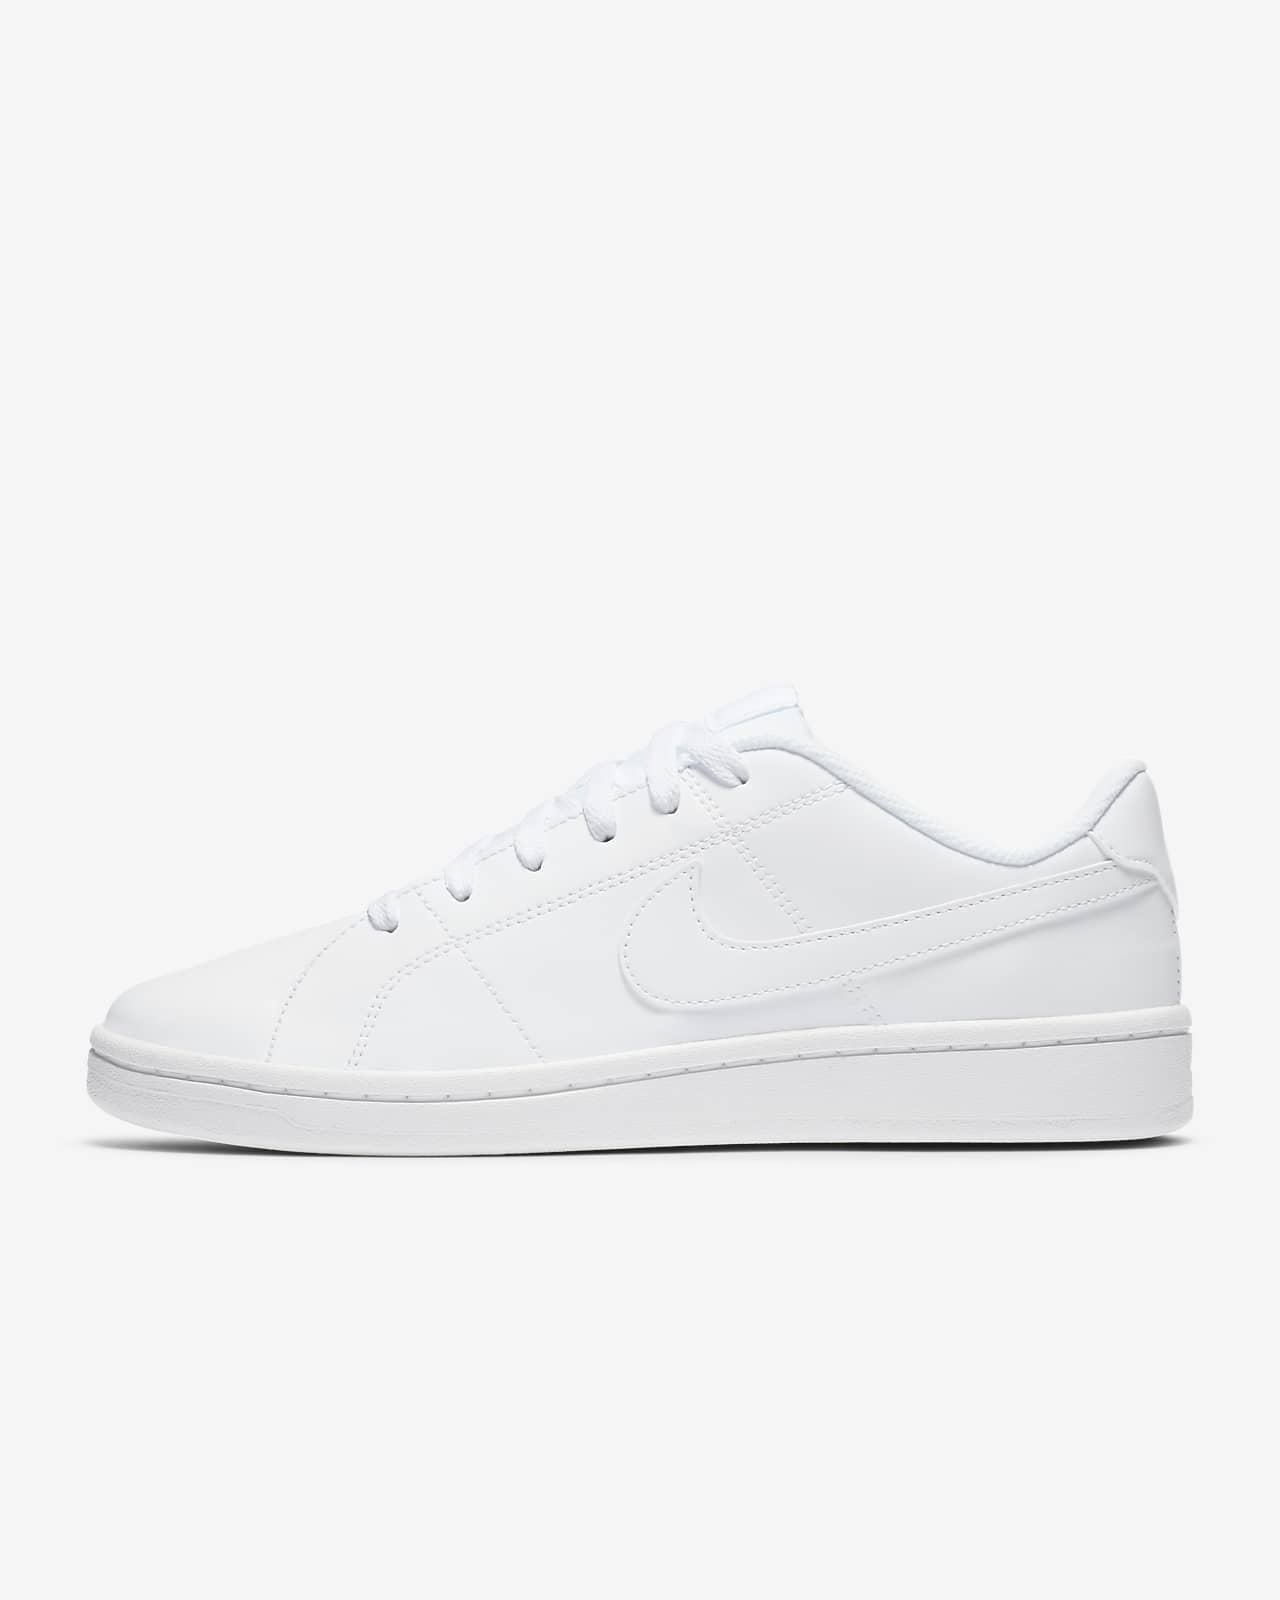 Chaussure Nike Court Royale 2 Low pour Homme